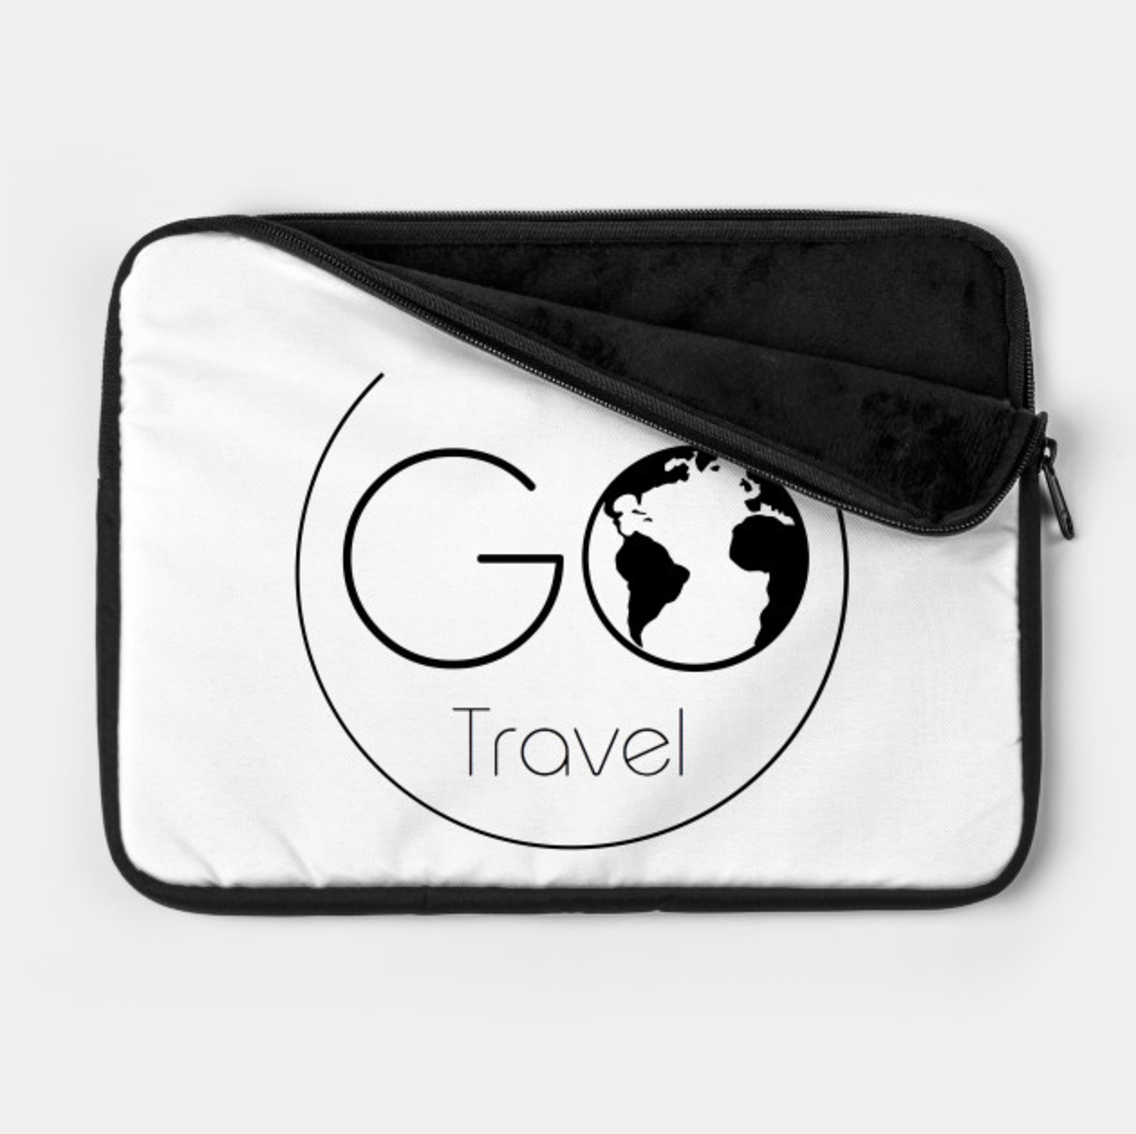 "Go Travel Laptop Case 12"", 13"", or 15"""